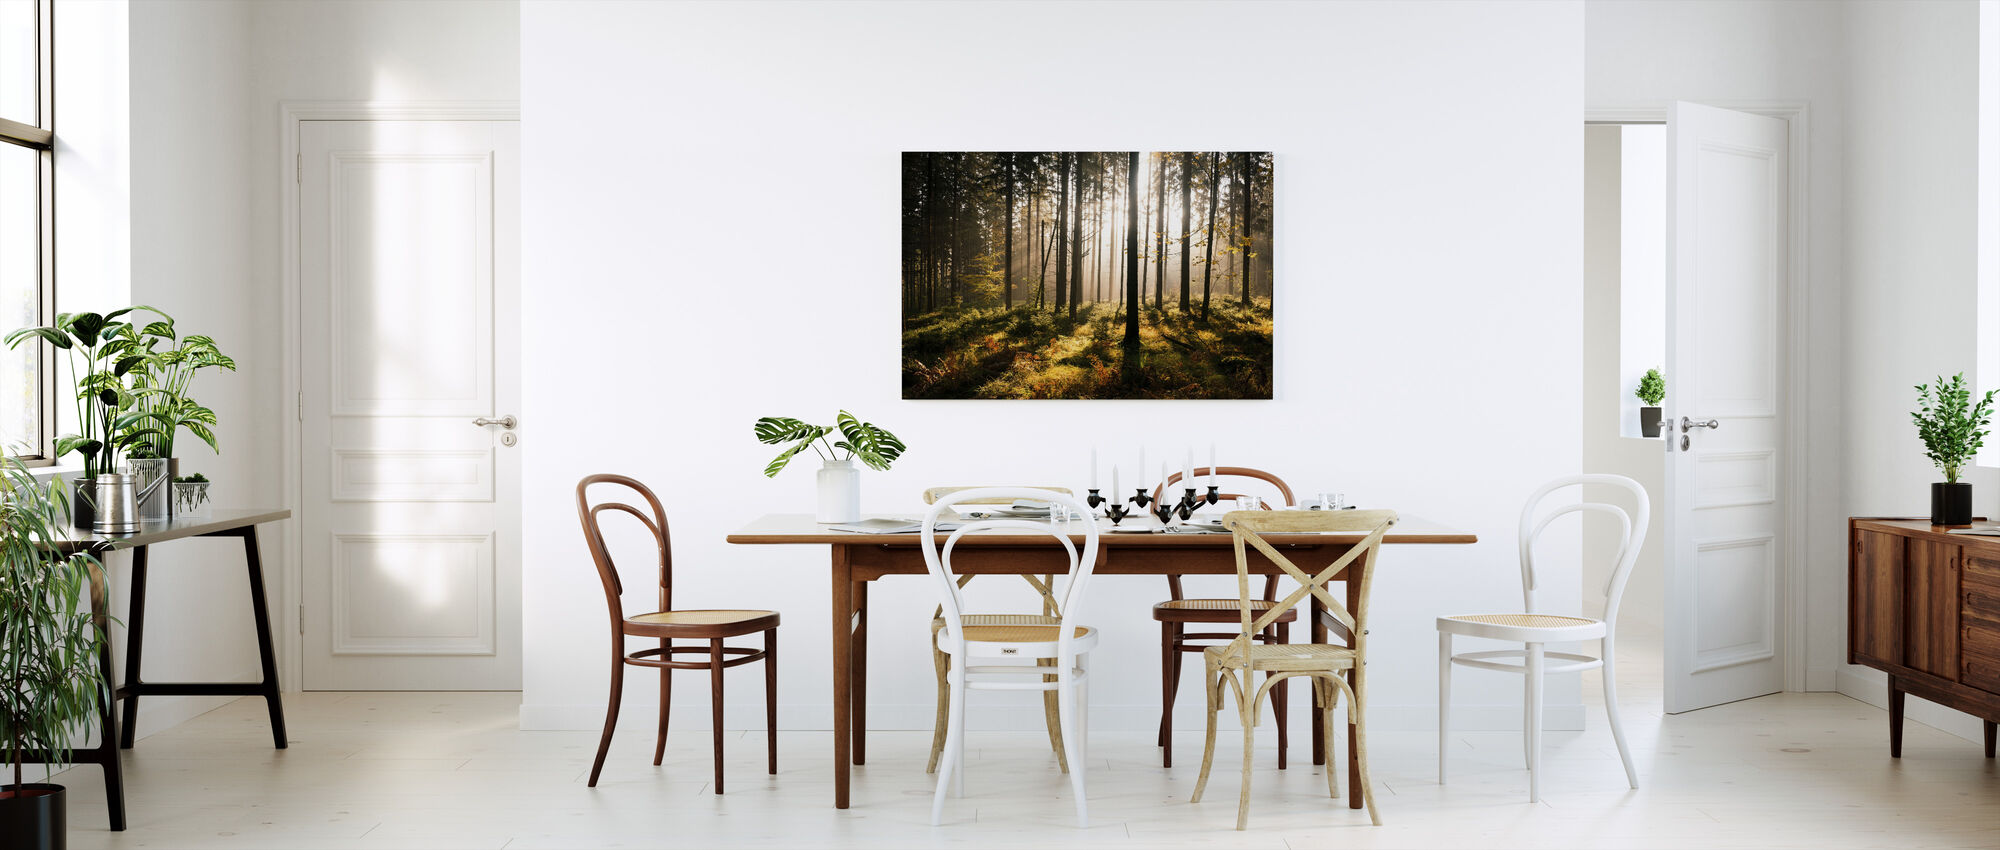 Fall Forest with Sunrays - Canvas print - Kitchen